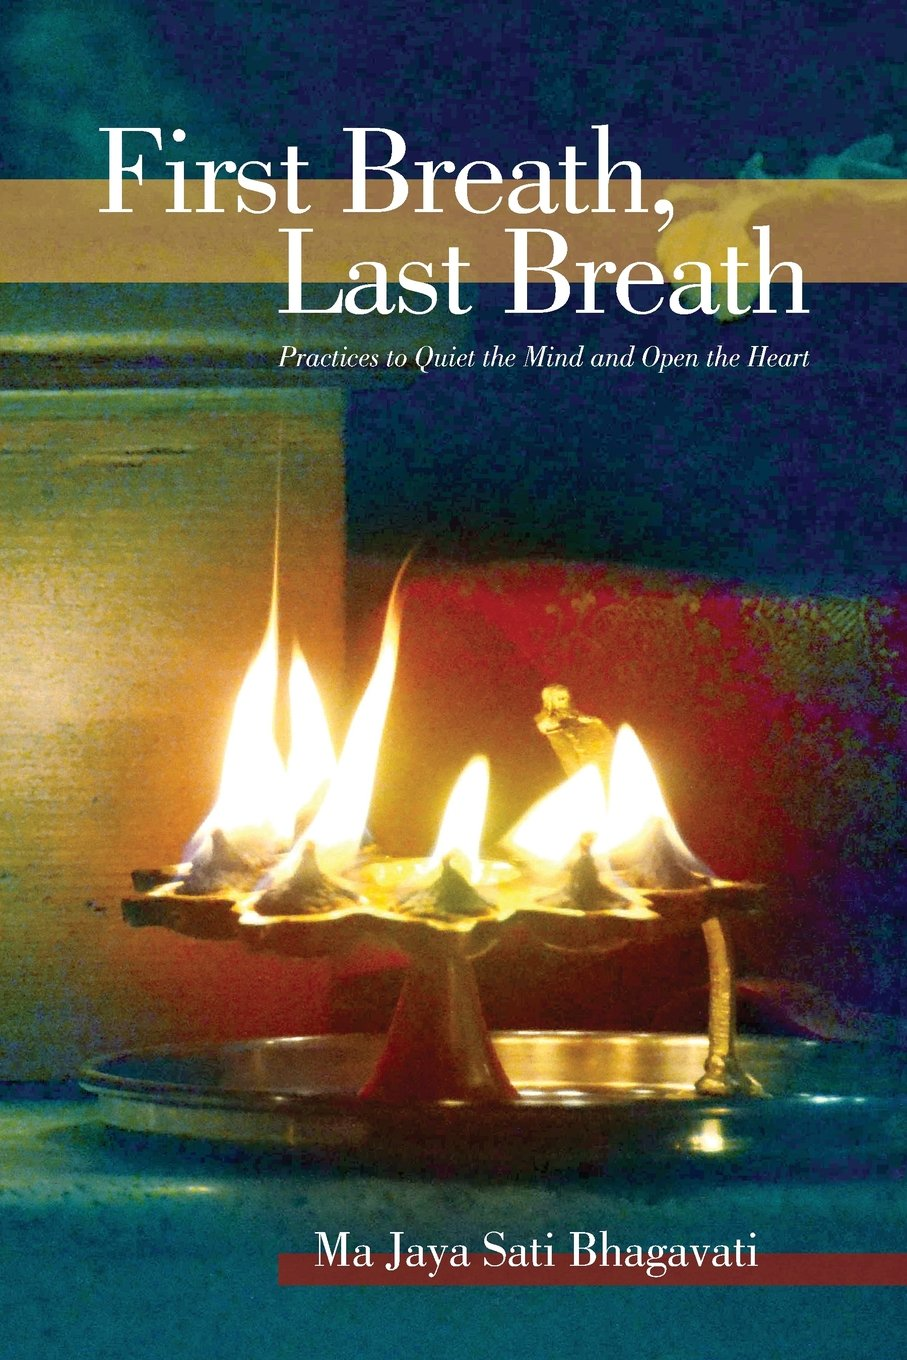 Download First Breath, Last Breath: Practices to Quiet the Mind and Open the Heart ebook